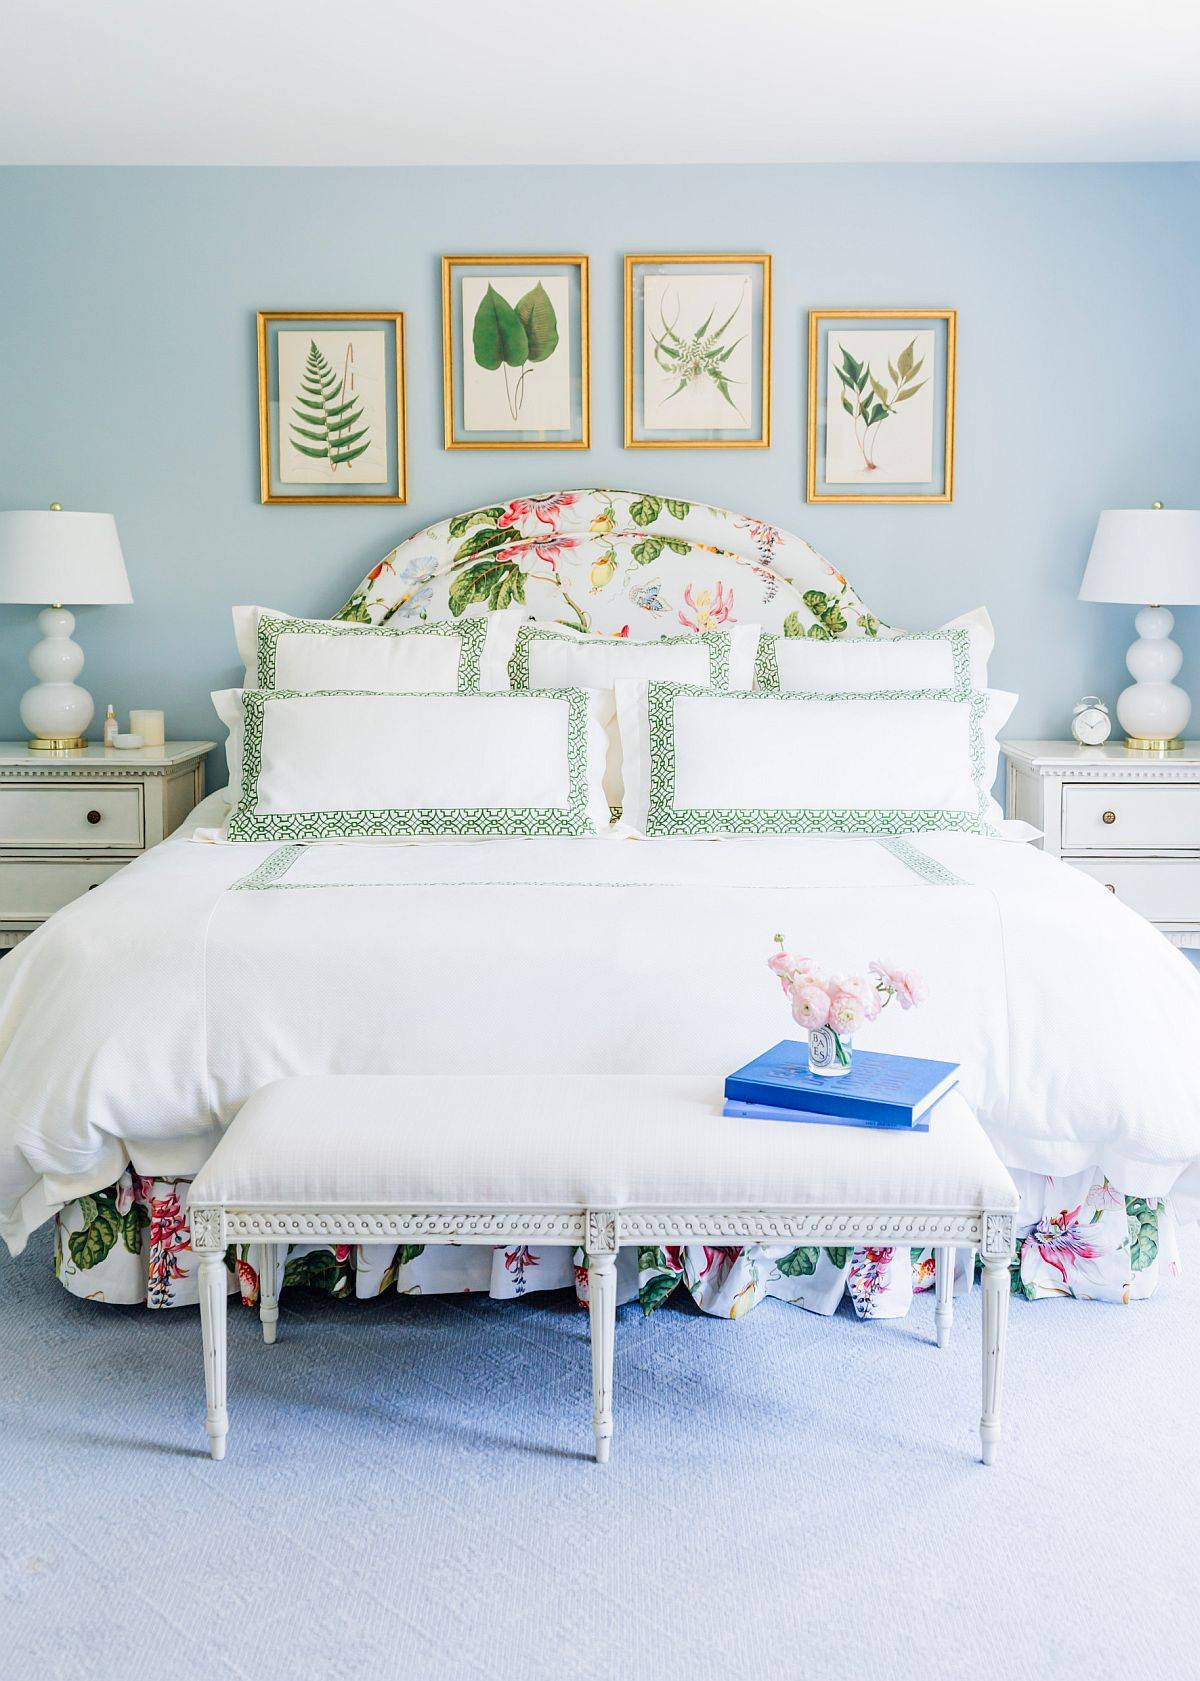 Elegant-traditional-bedroom-in-light-blue-and-white-with-botanicals-on-the-wall-56883